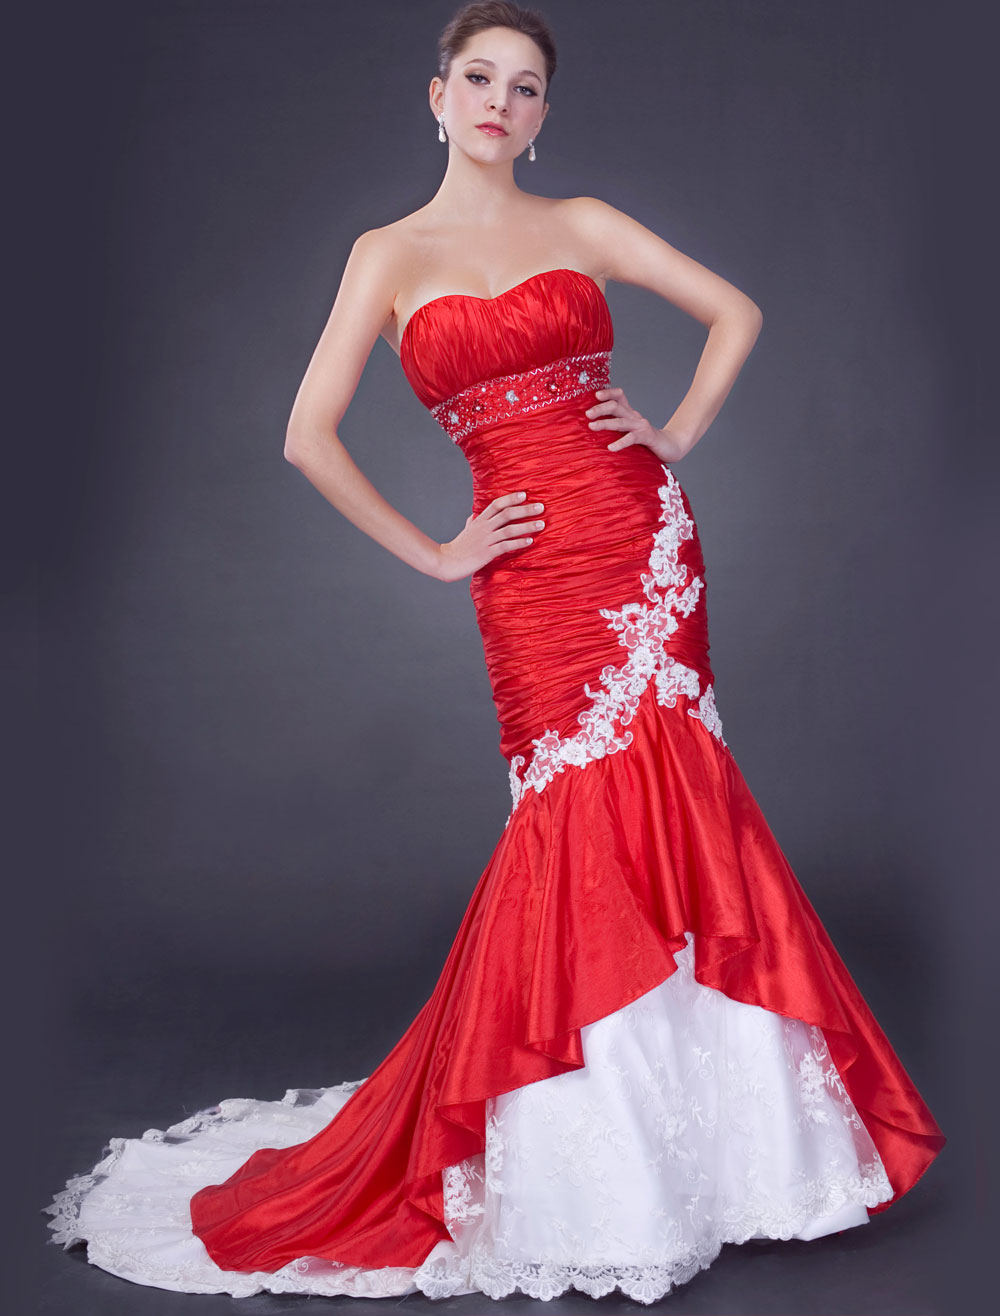 Wallpapers Background: Bridal Red Wedding Dresses | Bridal ...